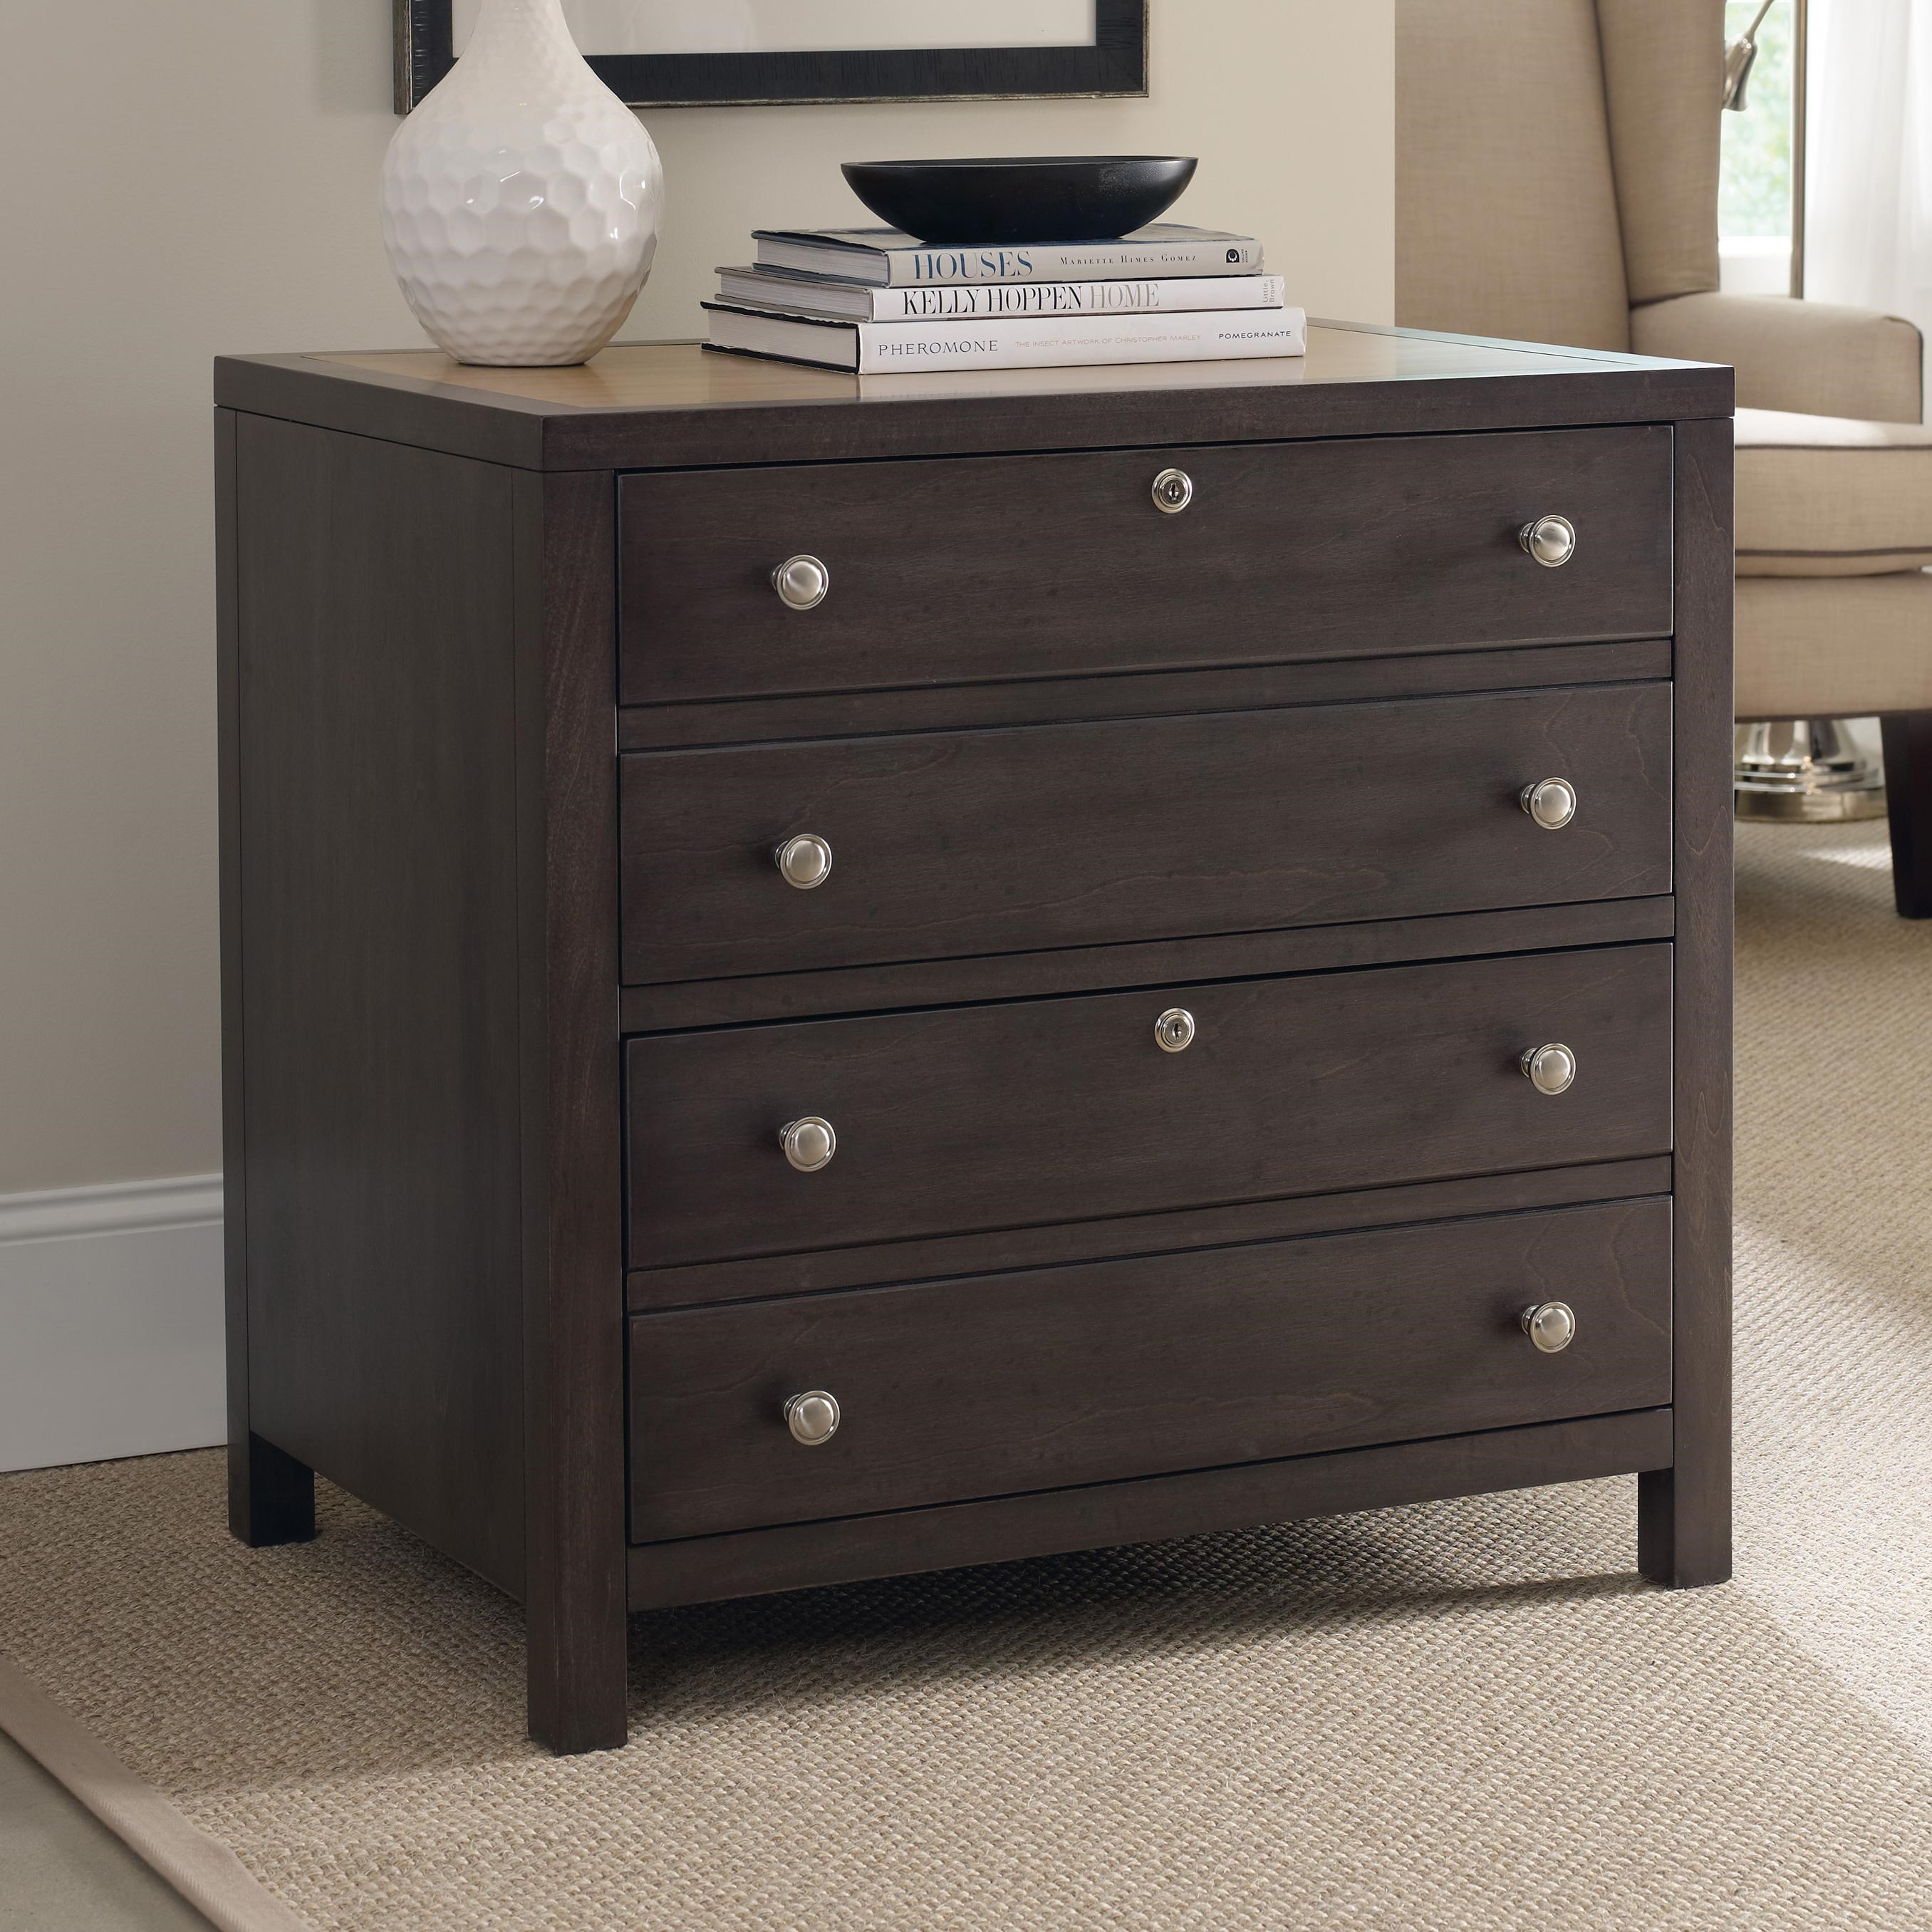 Hooker Furniture South Park Lateral File Cabinet with 2 Locking ...